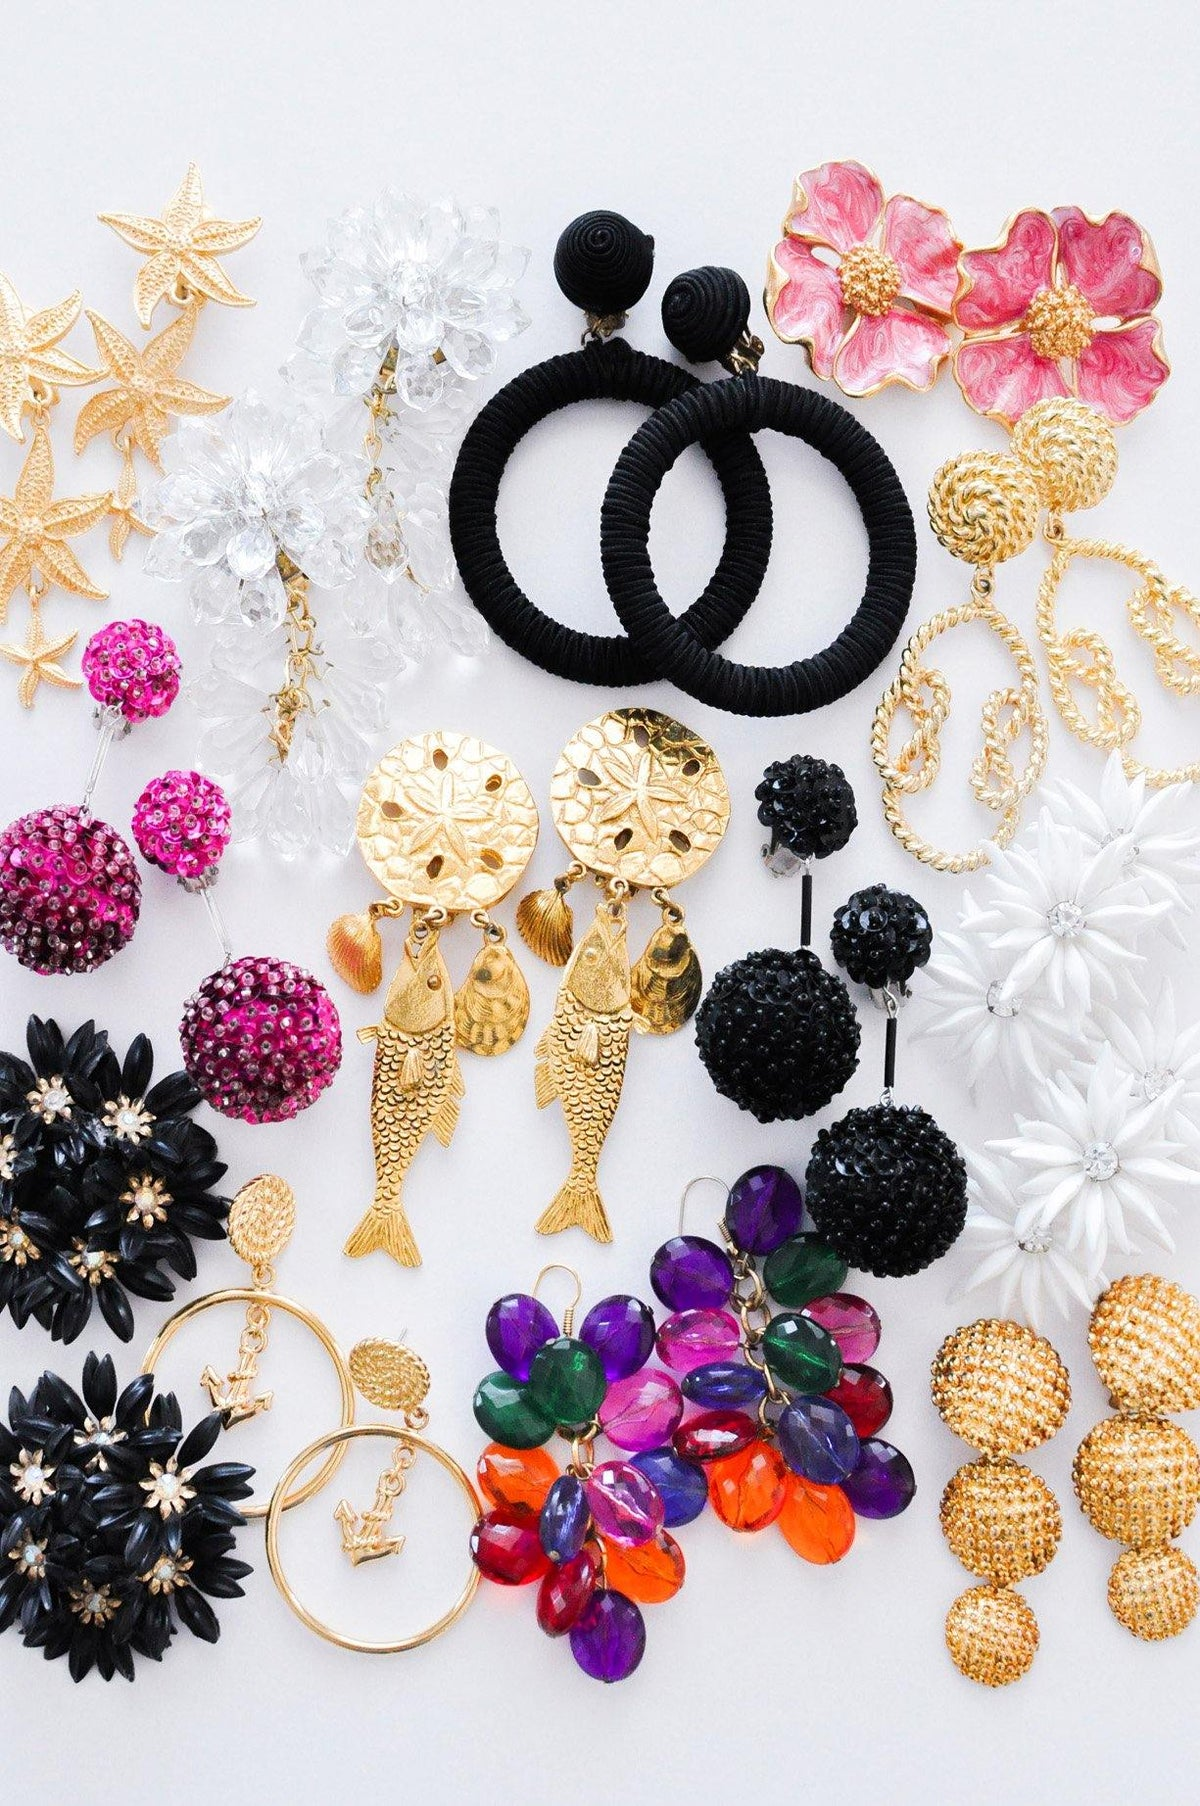 Vintage statement earrings for Summer from Sweet & Spark.